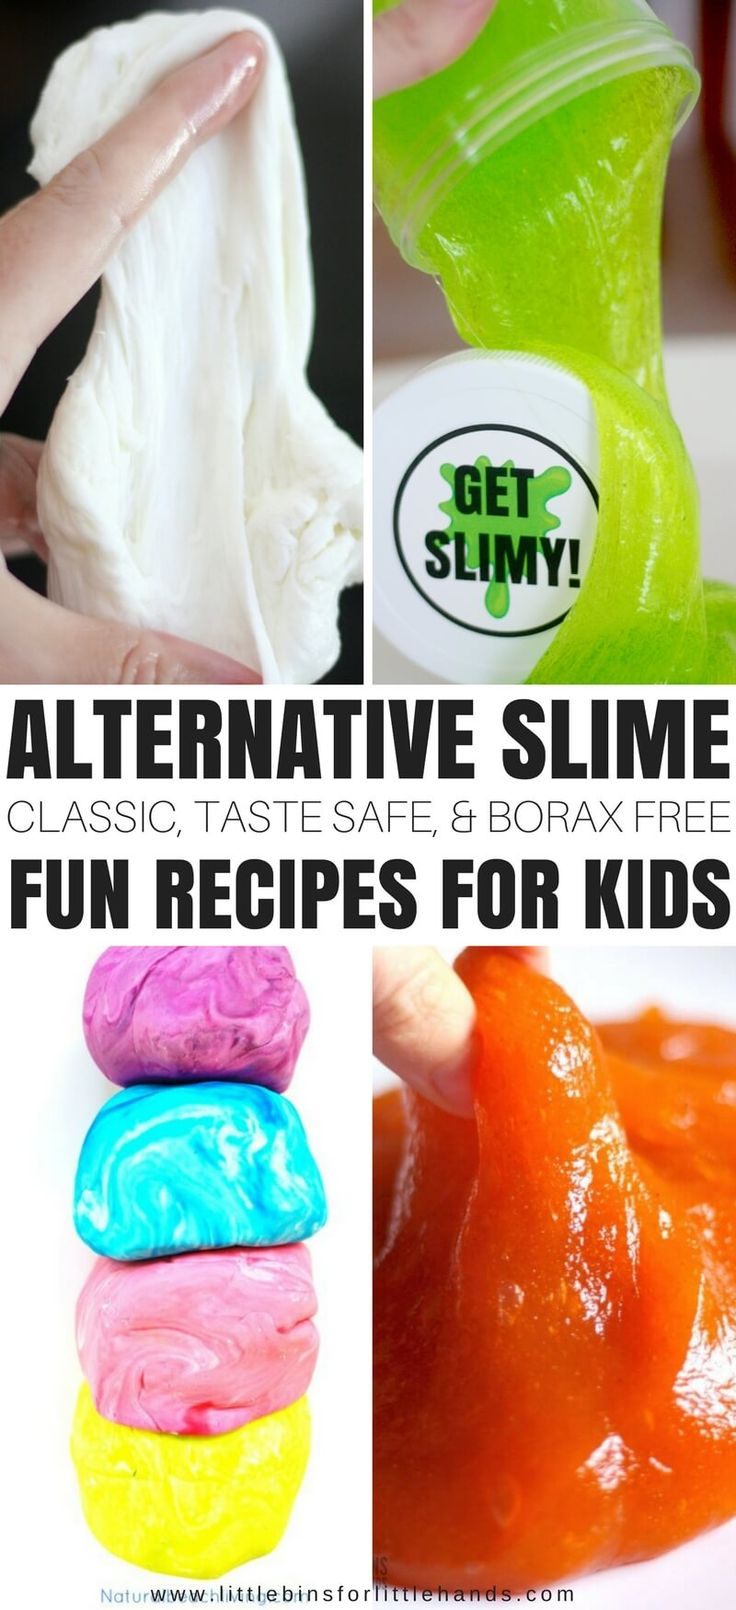 Slime is a must try project to try with the kids. We make lots of slime with our 4 basic homemade slime recipes.If you are having trouble finding the ingredients or need a different option, we have plenty of alternative slime recipes!Maybe you need a taste safe slime or a borax free slime, or you want a classic. Read on for more!